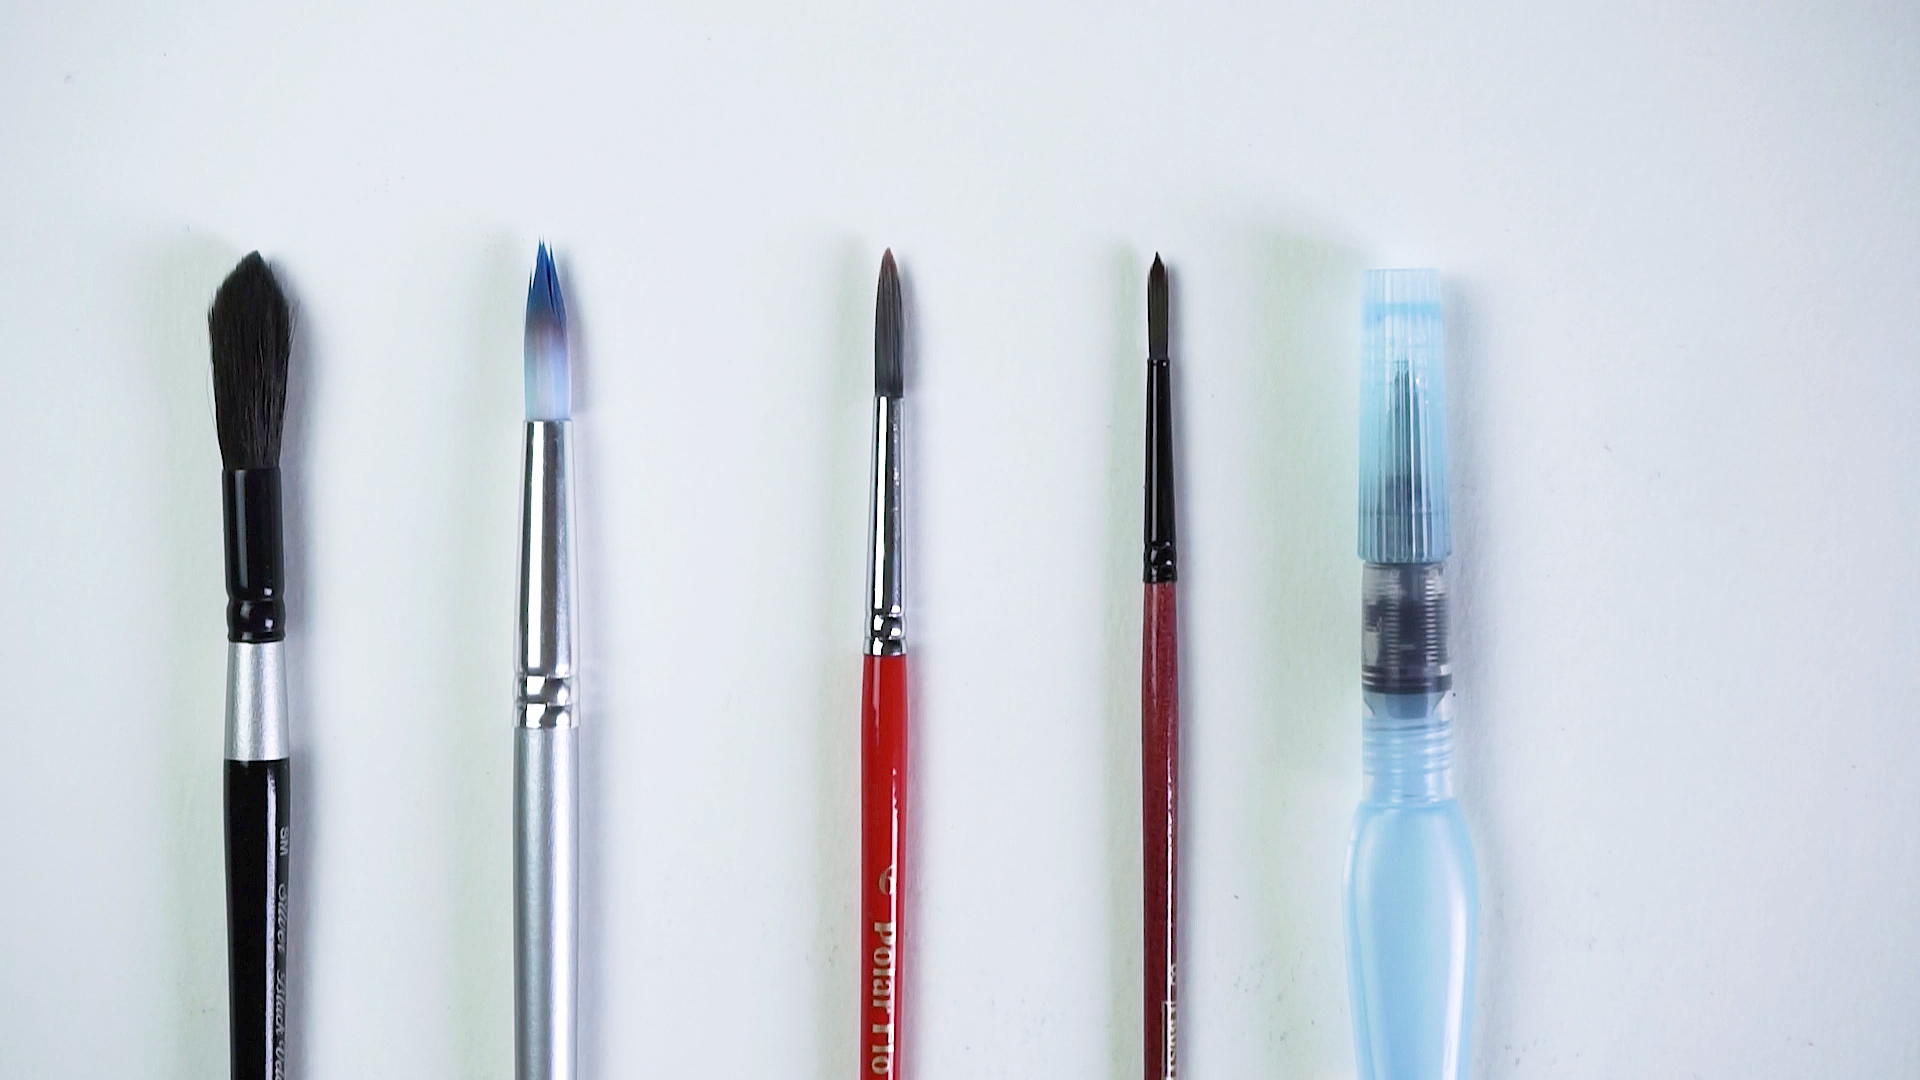 Go-to brushes. A jumbo round, 8 round, 6 round, 4 round and a Pentel Aquash water brush that's perfect for travel